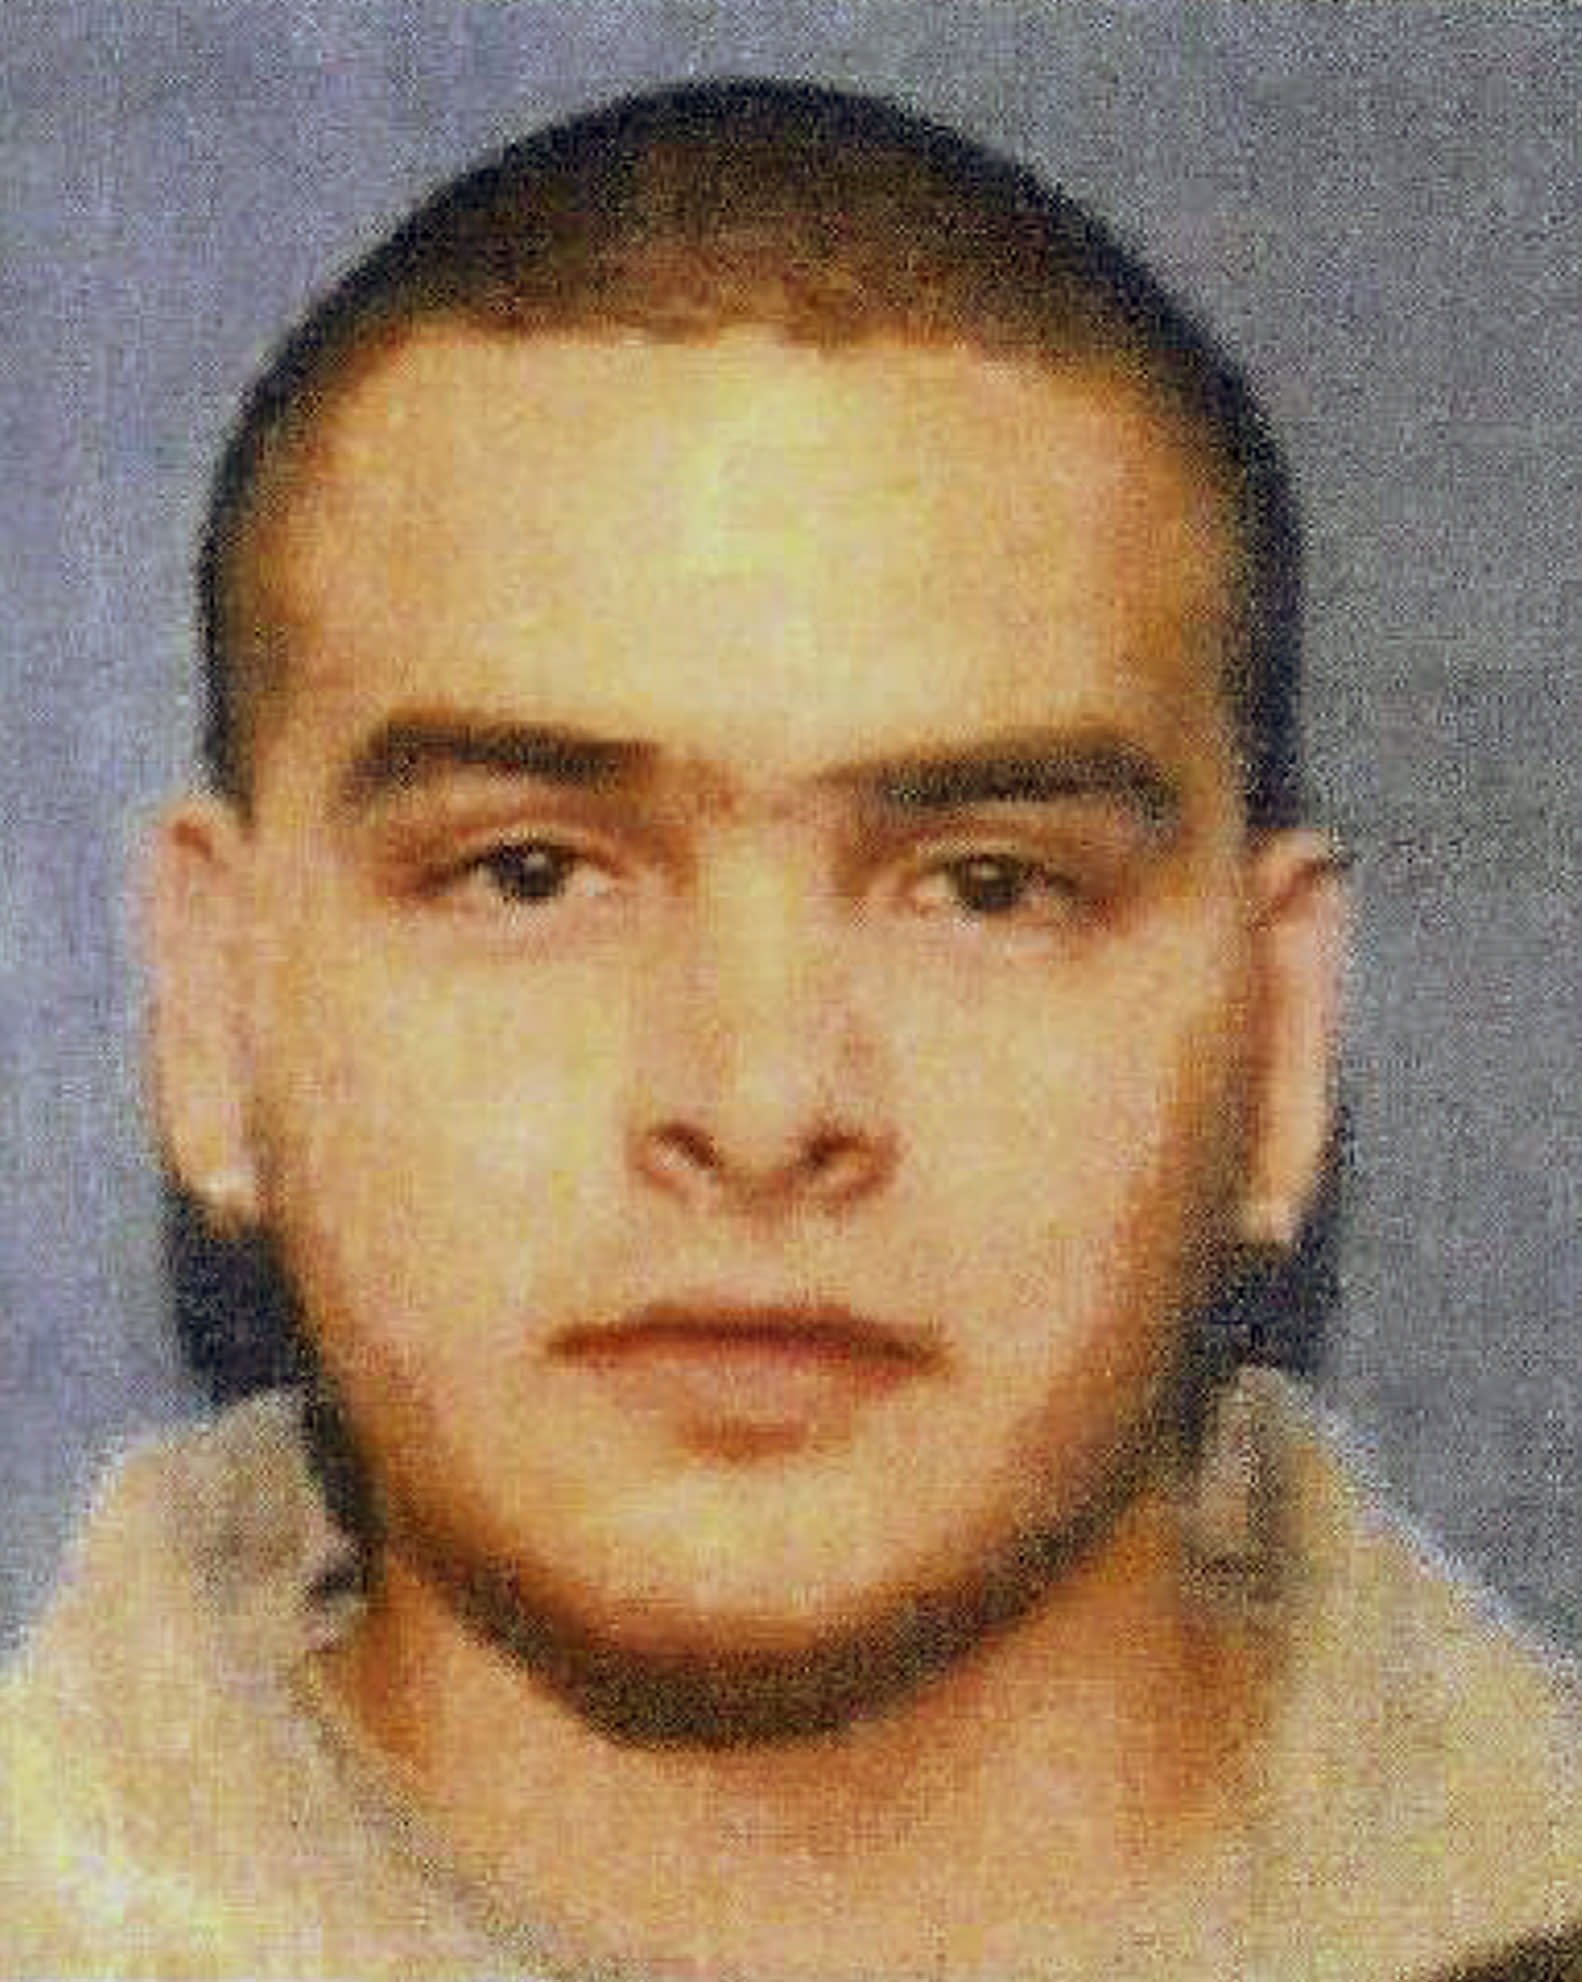 Identical twins who spilled cartel secrets to be sentenced